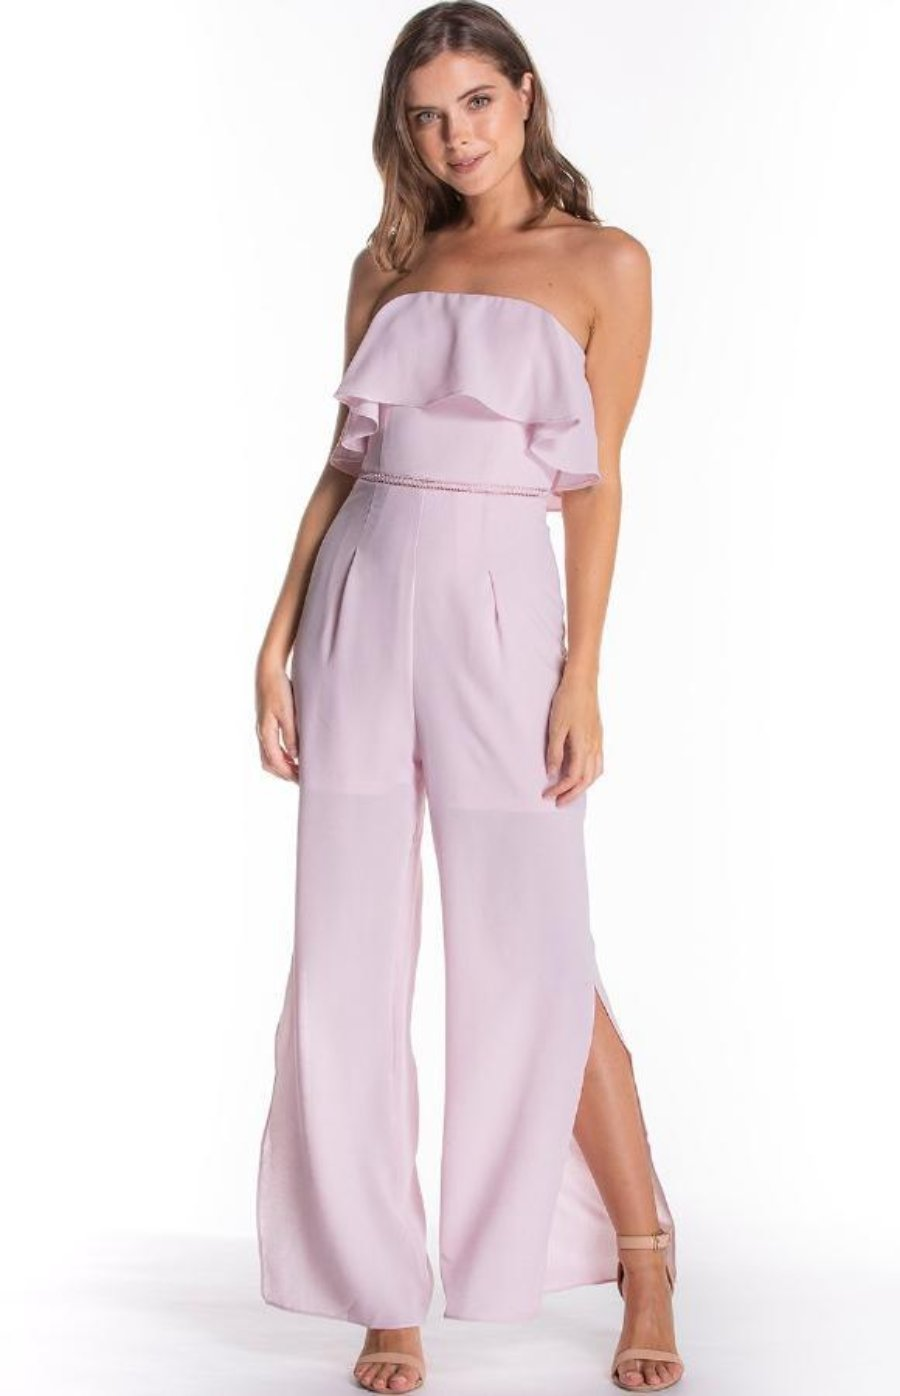 MEGAN BLUSH JUMPSUIT - Saphyra Boutique